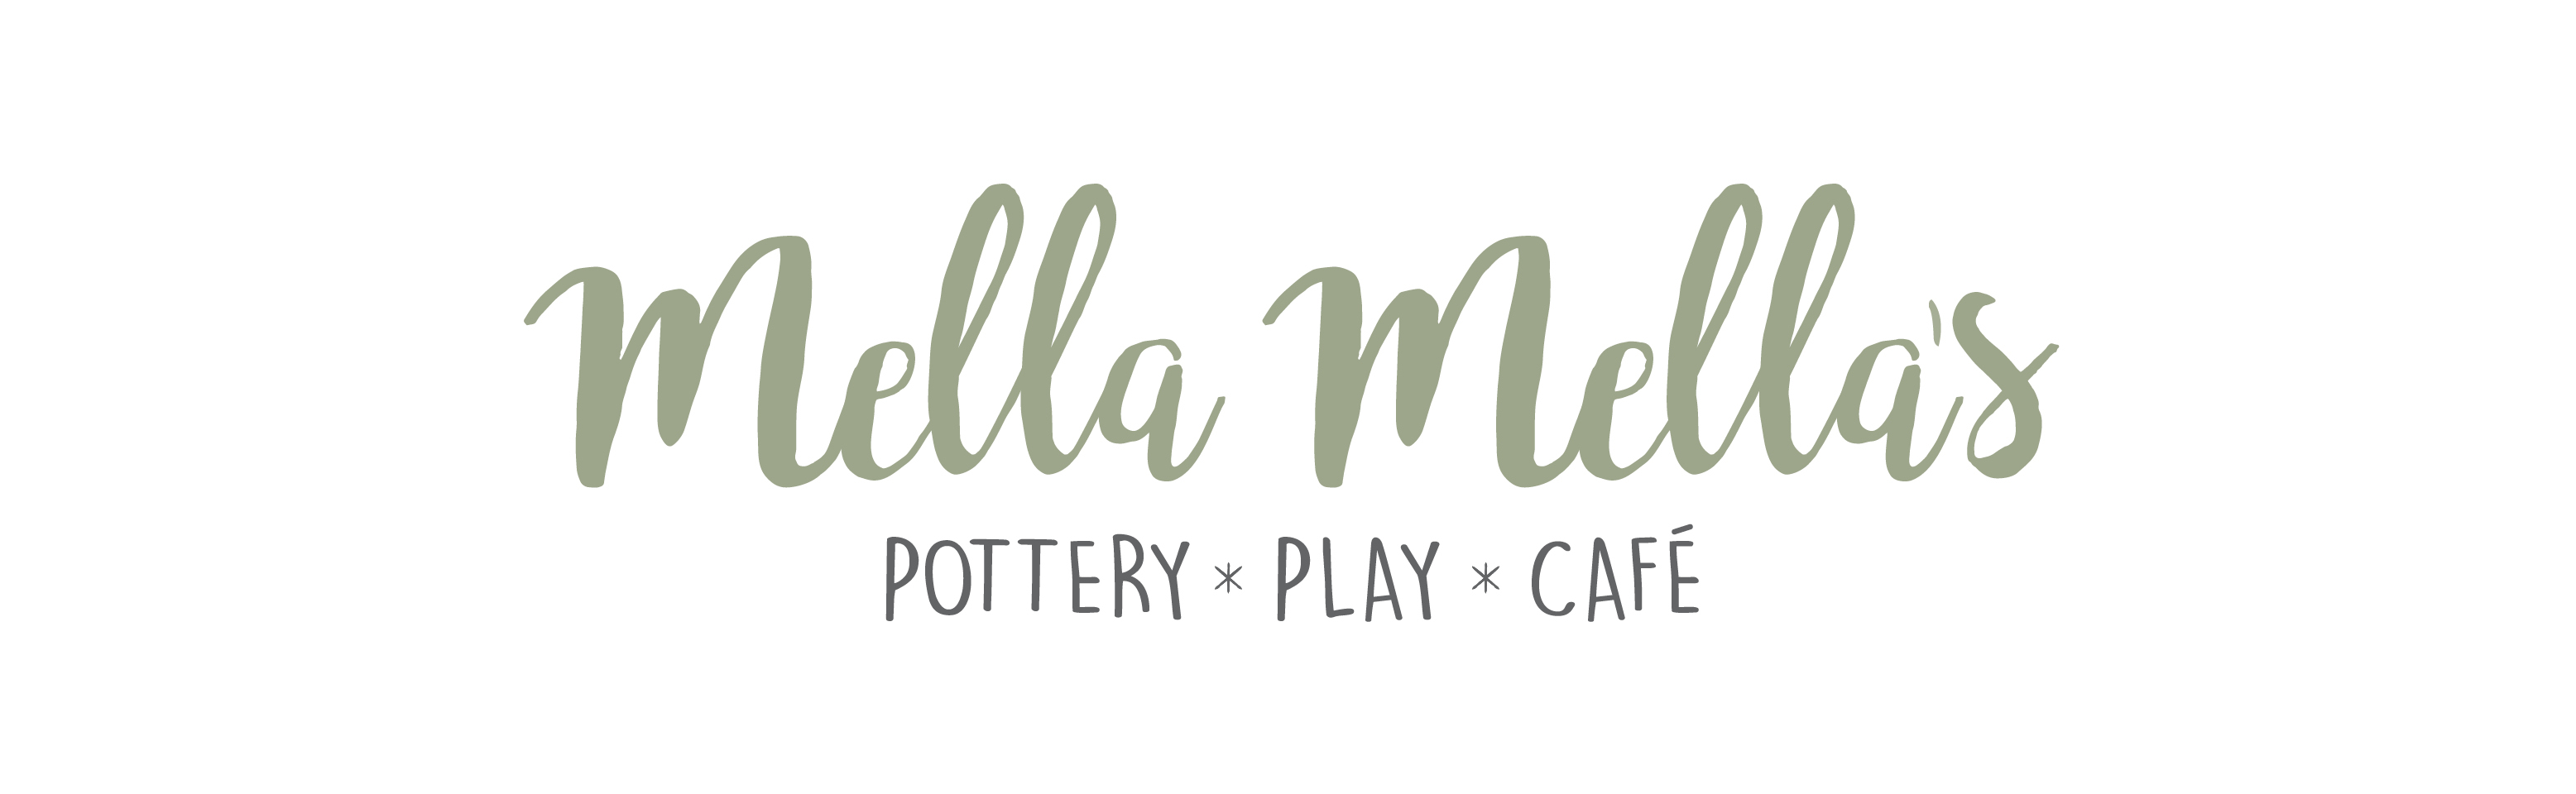 Intensive Throwing - Mixed Beginners by Mella Mella's Pottery, Play & Café - art in London